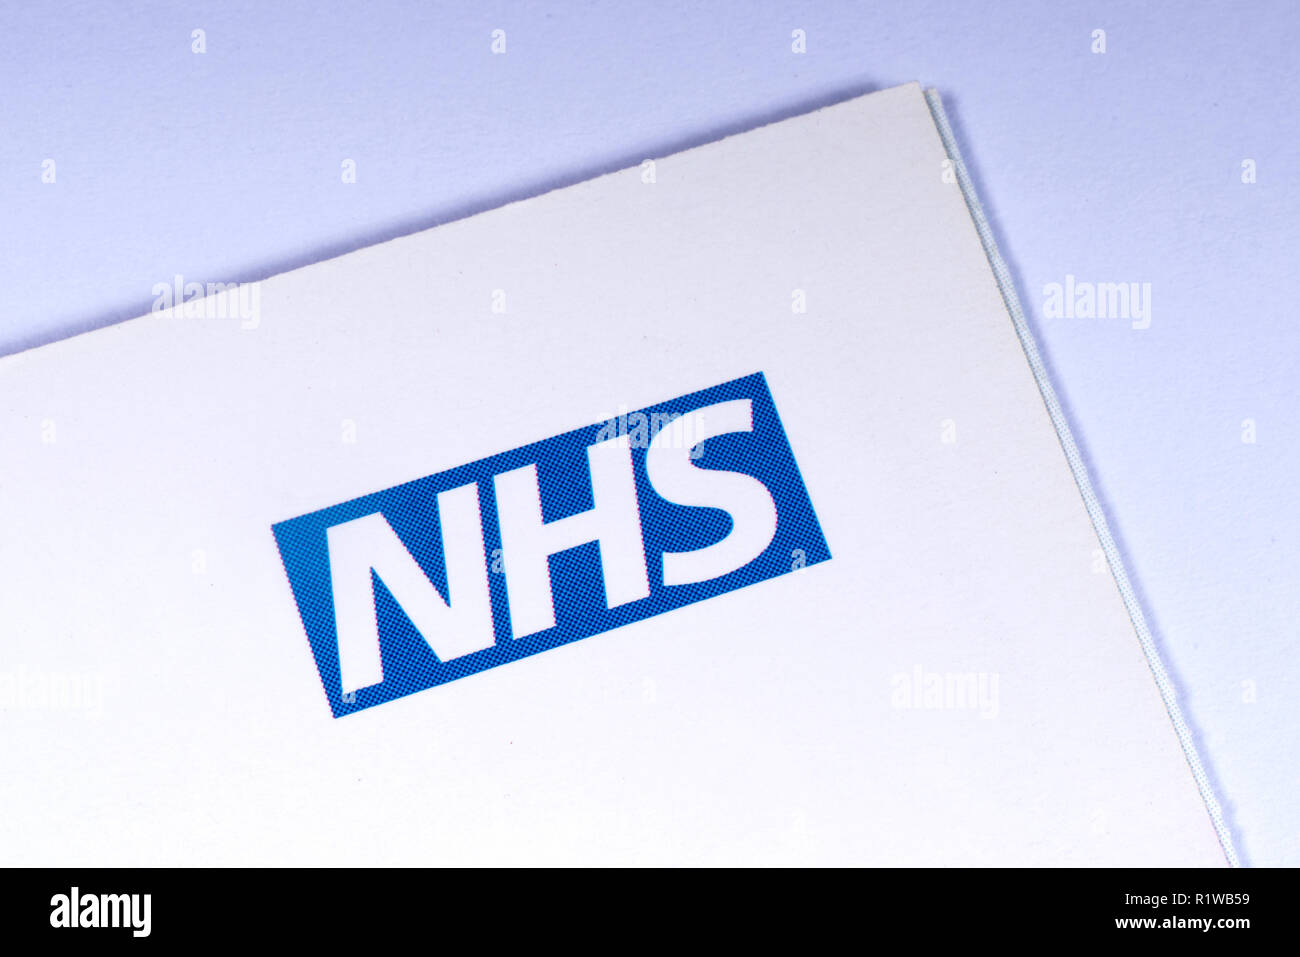 London, UK - November 14th 2018: A close-up of the NHS - National Health Service logo, pictured on an information leaflet. - Stock Image